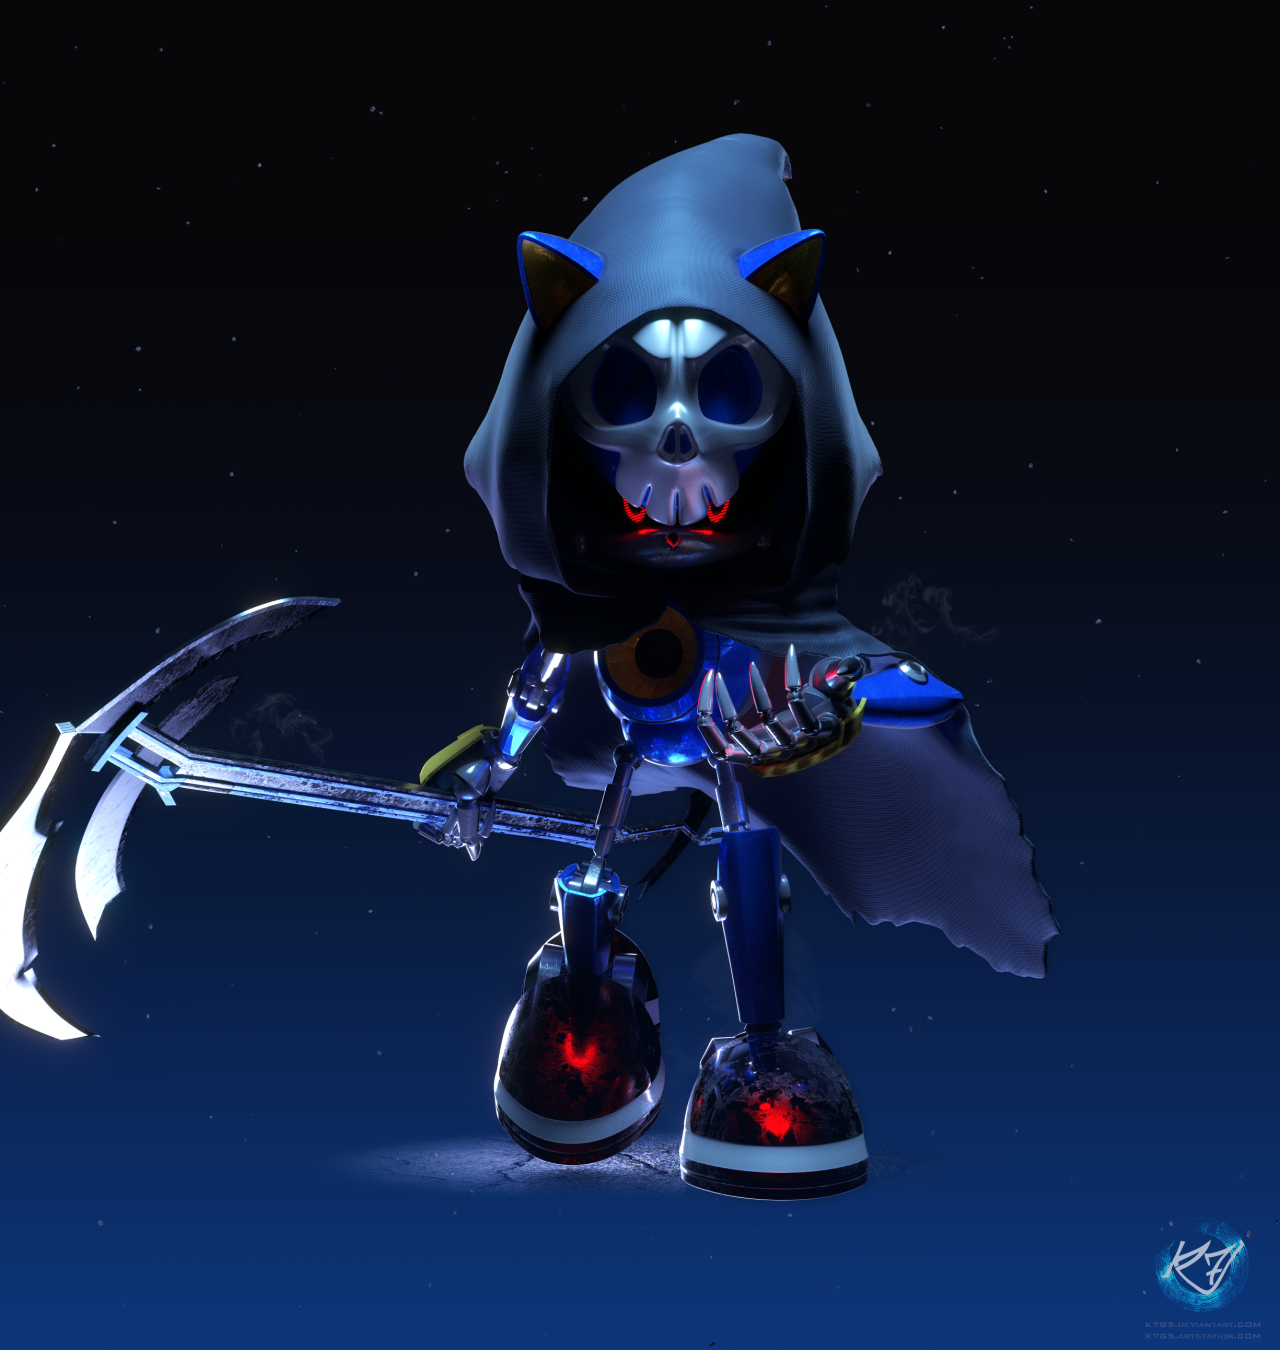 Reaper Metal Sonic The Hedgehog Know Your Meme